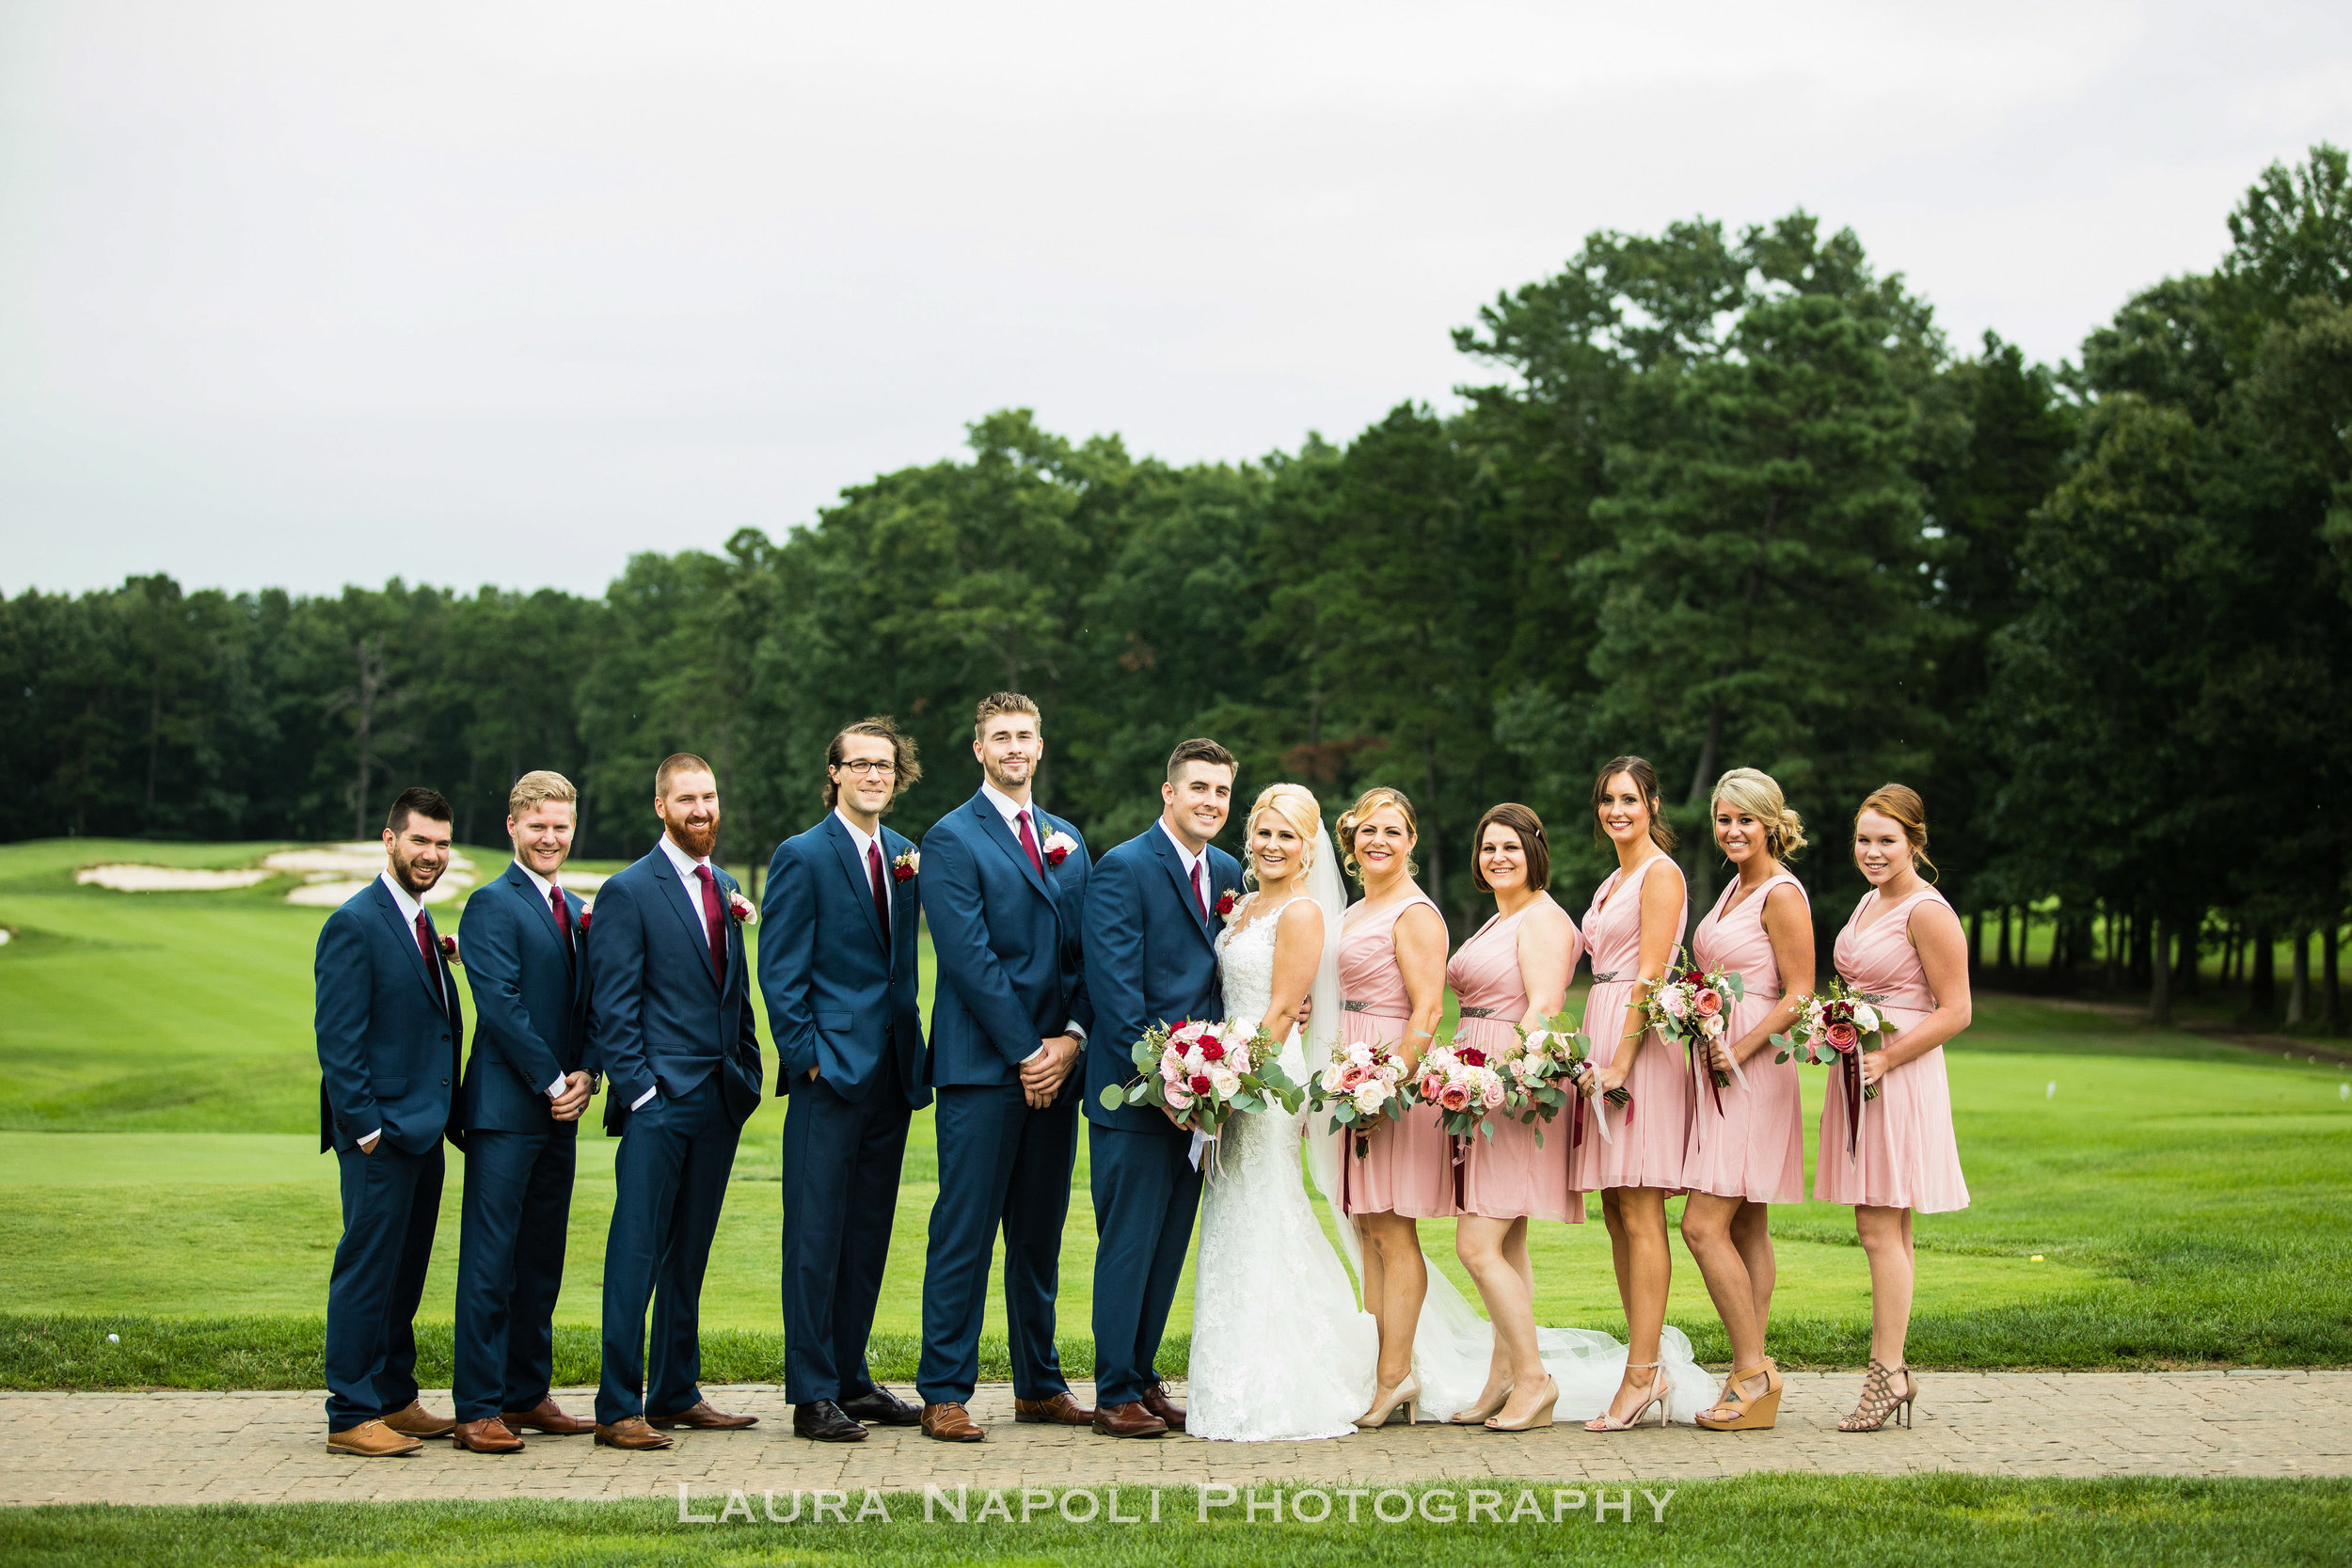 Runningdeergolfclubwedding-17.jpg